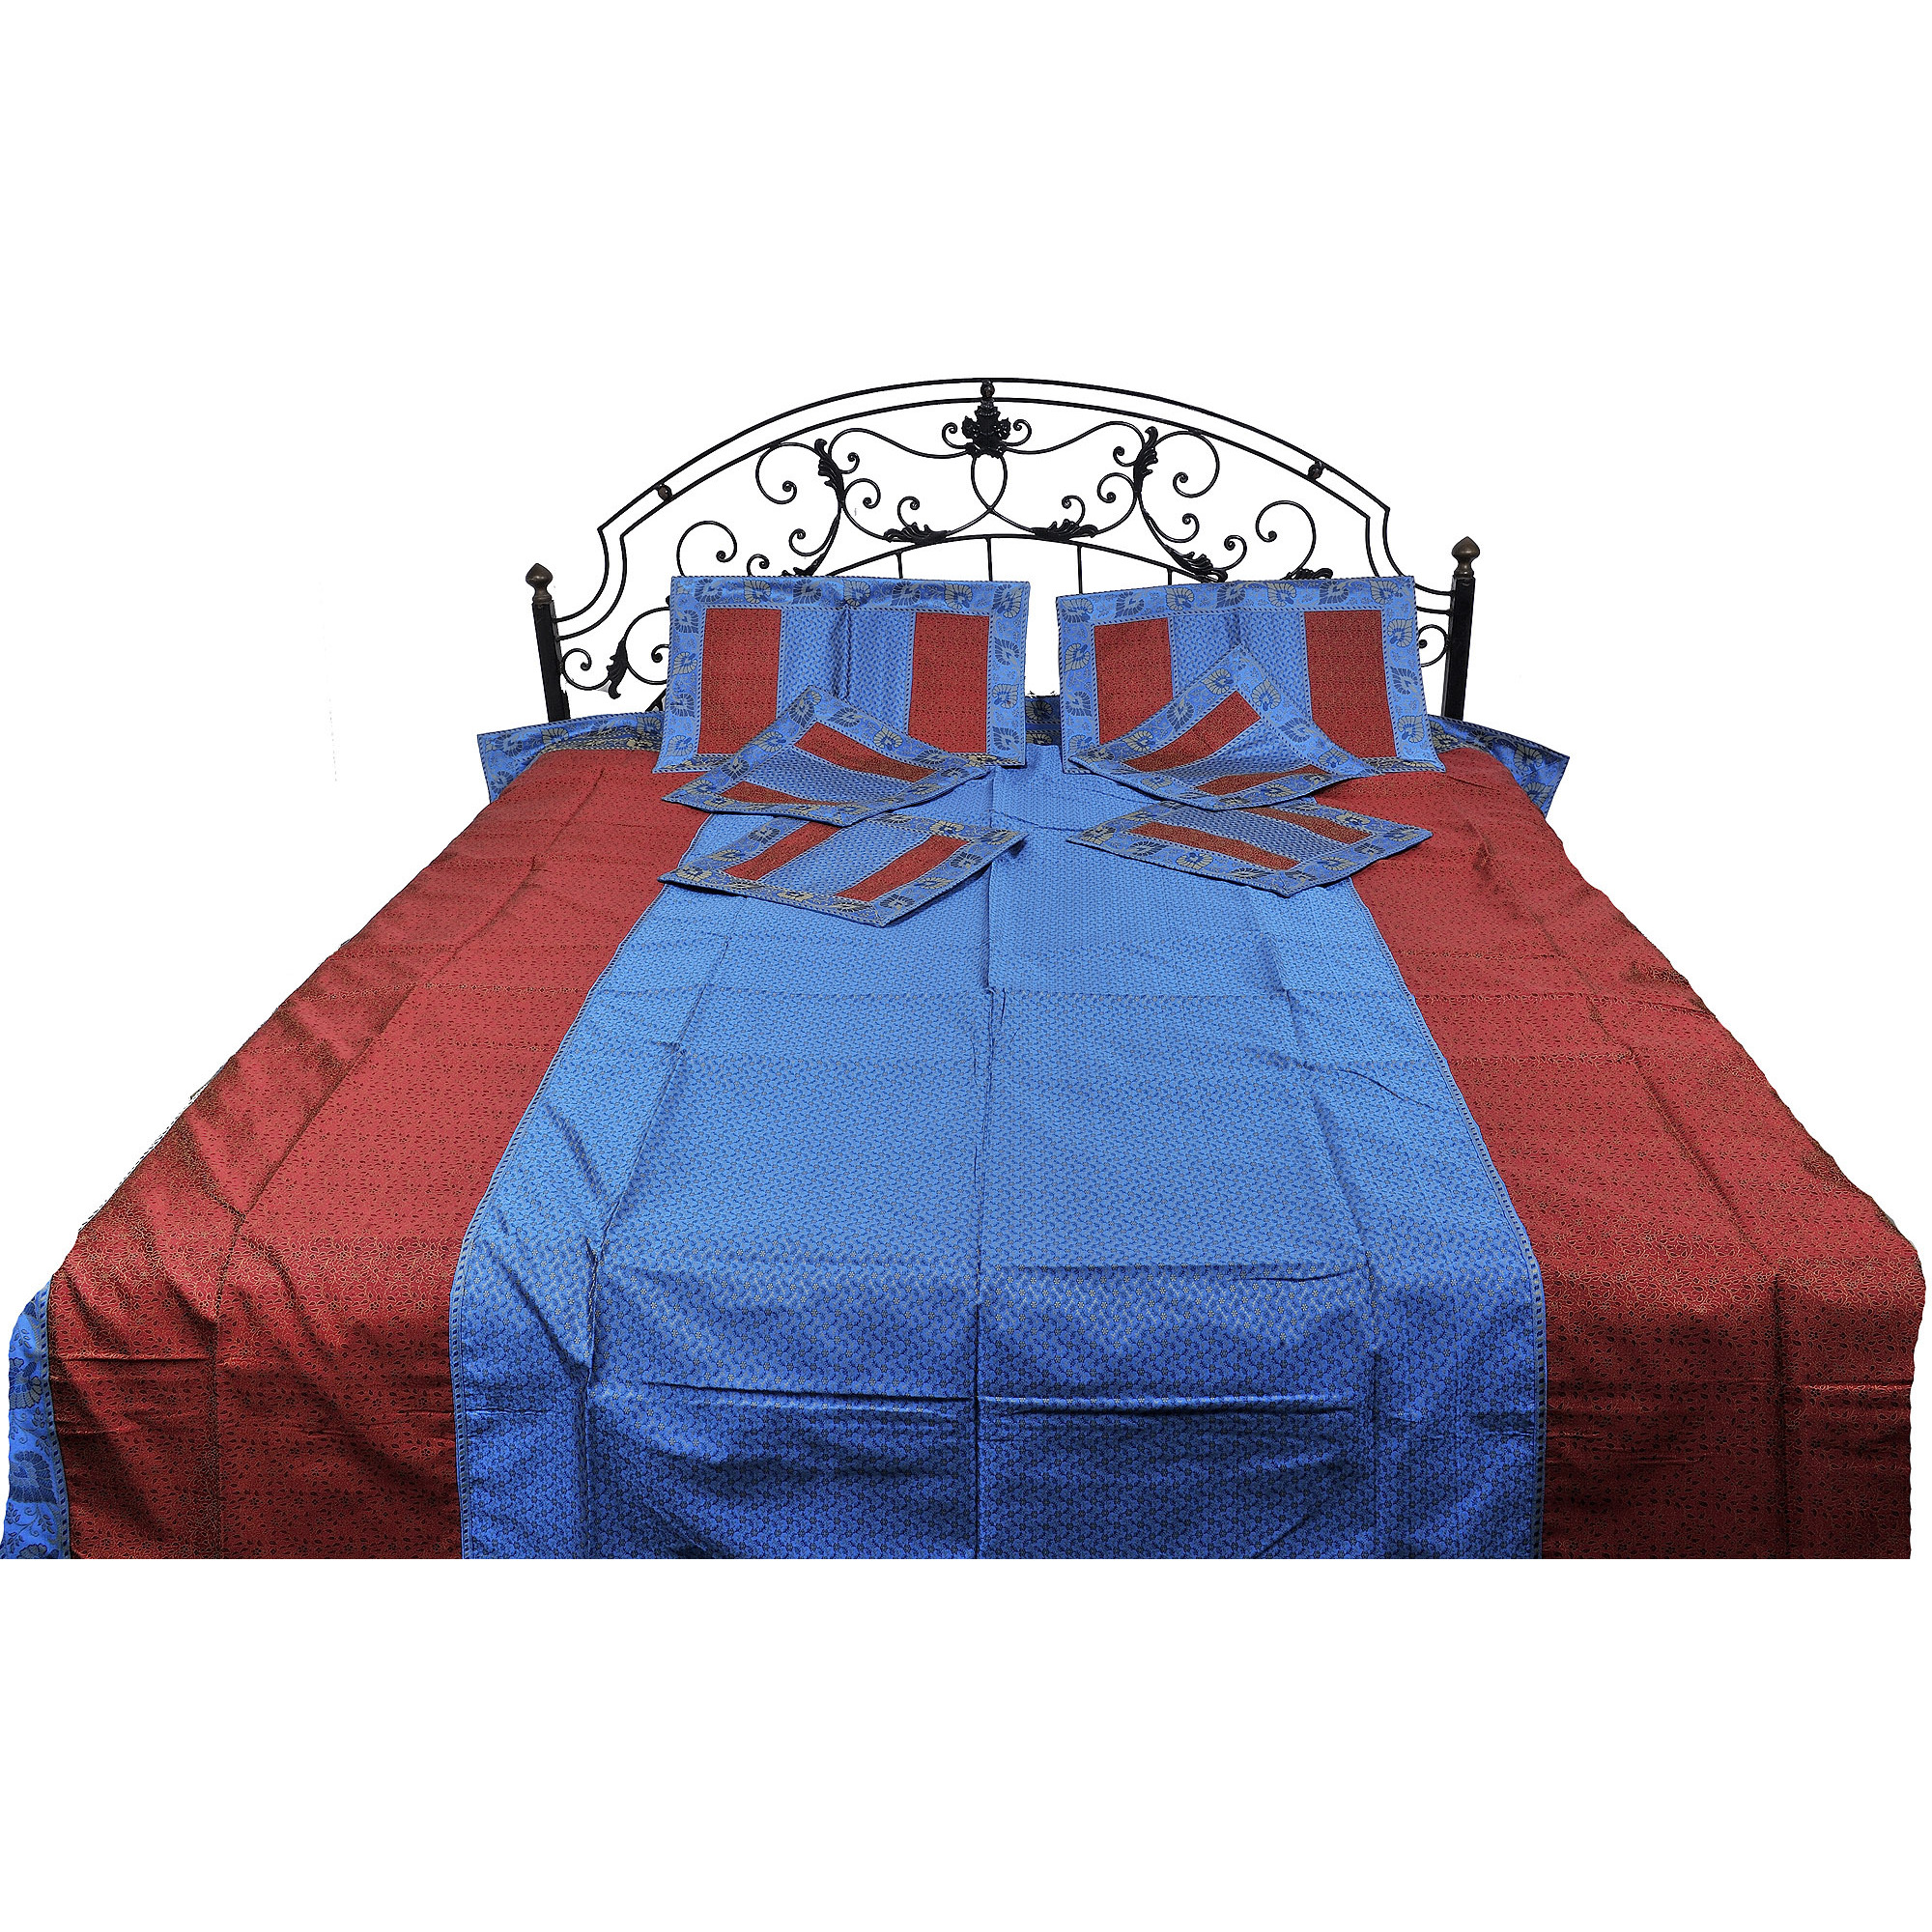 Swedish-Blue and Red Seven Piece Bedspread with Tanchoi Weave